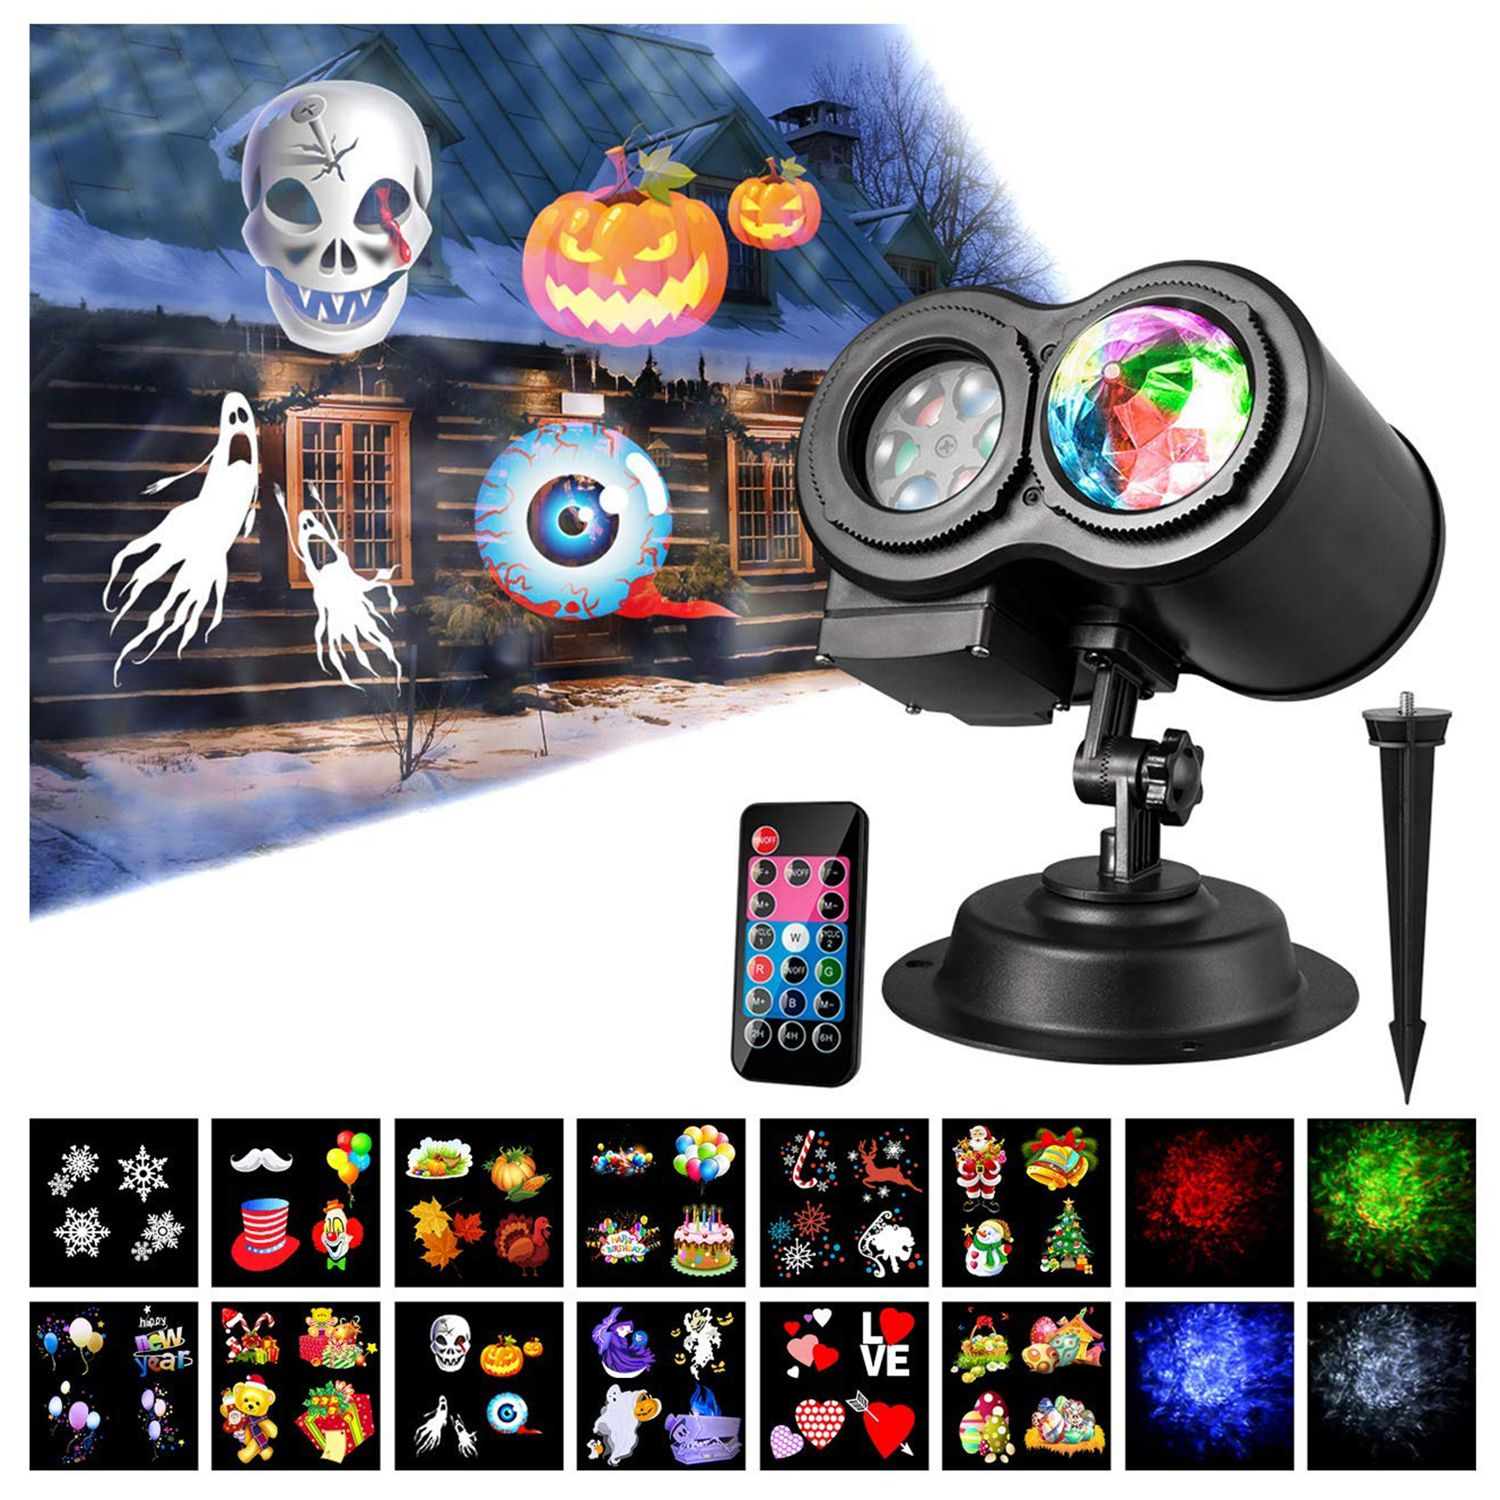 Water Wave Lights LED Light Projector Remote Control Colorful Flowing Water Ripple Effects for Halloween Christmas Parties